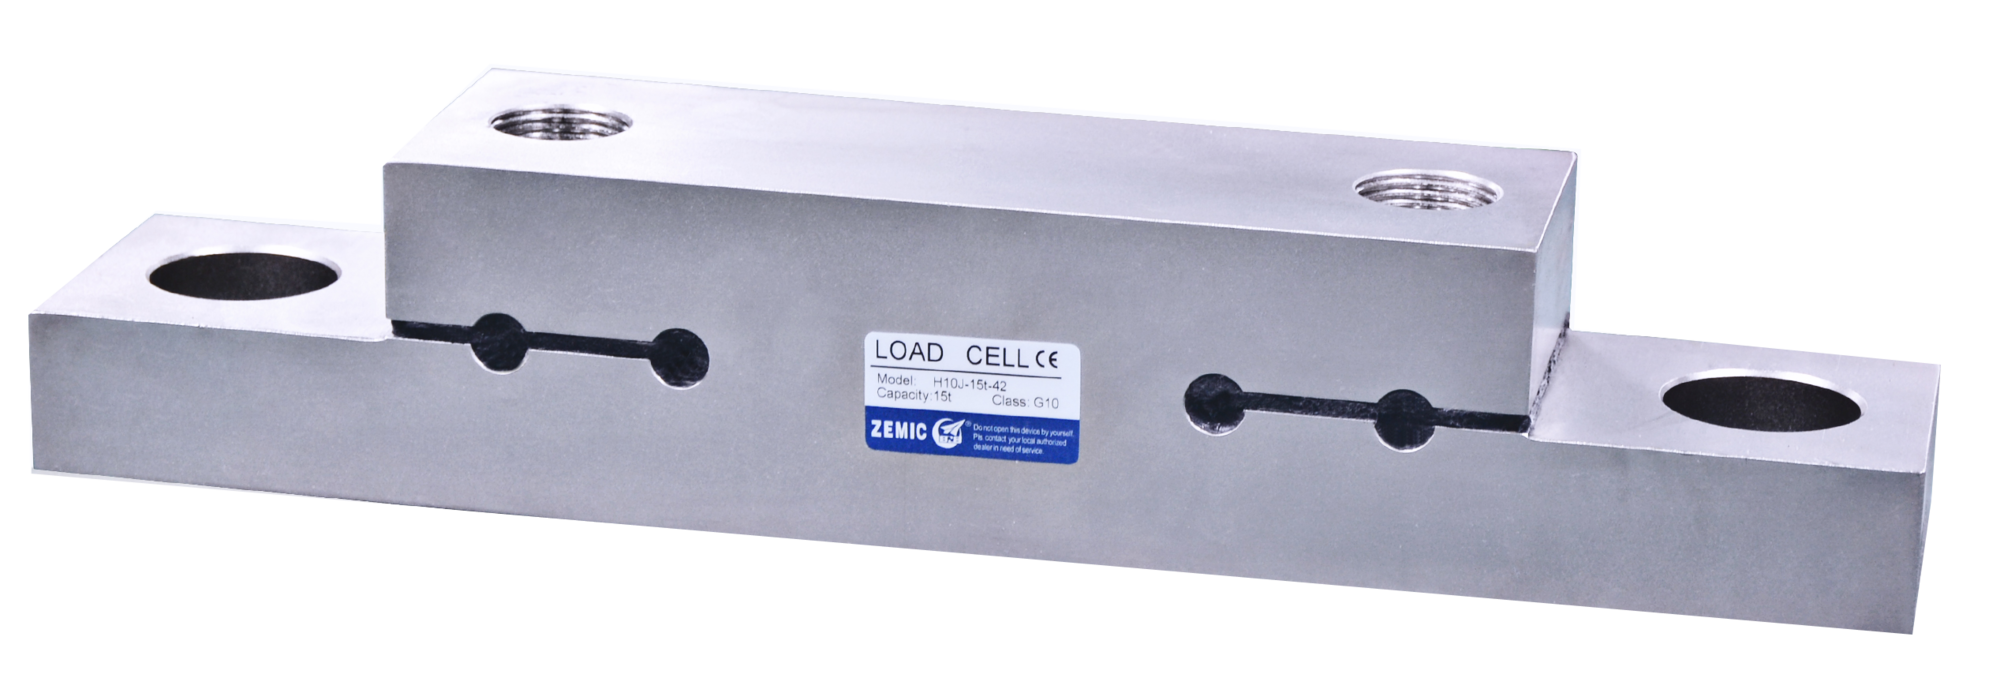 Onboard Load Cells